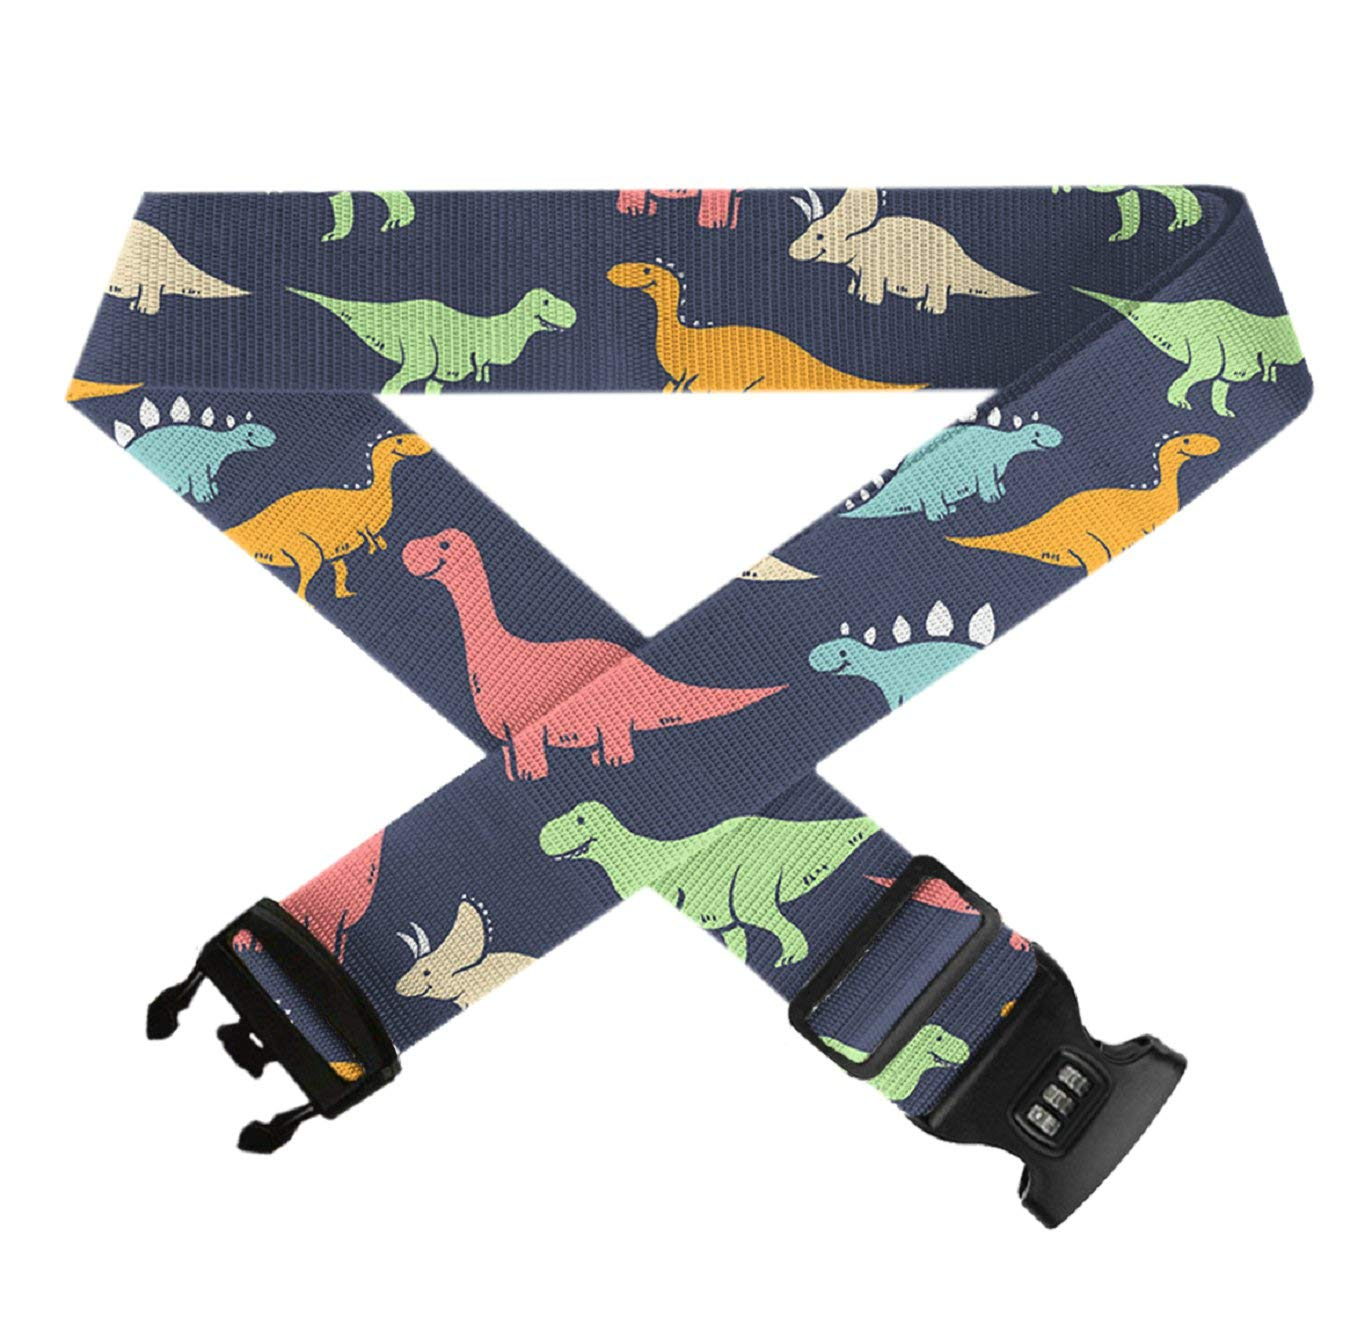 Funny Dinosaurs 1 PC Durable Suitcase Straps TSA Approved Lock for Travel Bag Accessories GLORY ART Adjustable Travel Luggage Belts